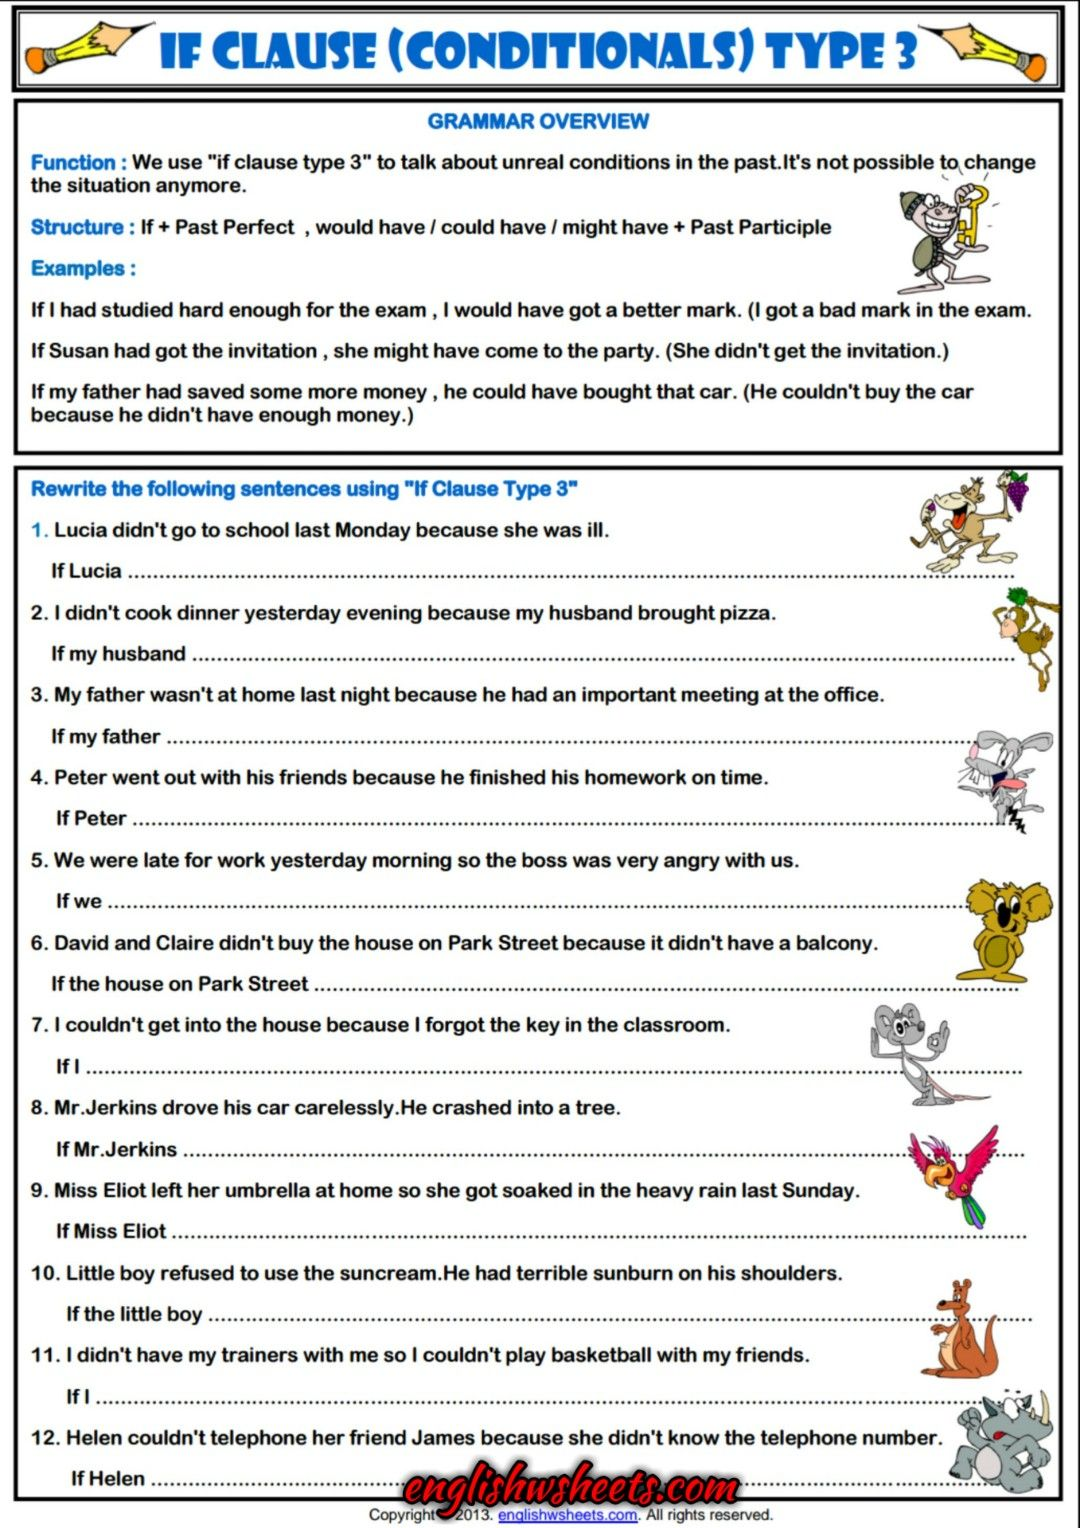 Worksheets Esl Practice Worksheets conditionals type 3 esl grammar exercises worksheet 2 worksheet